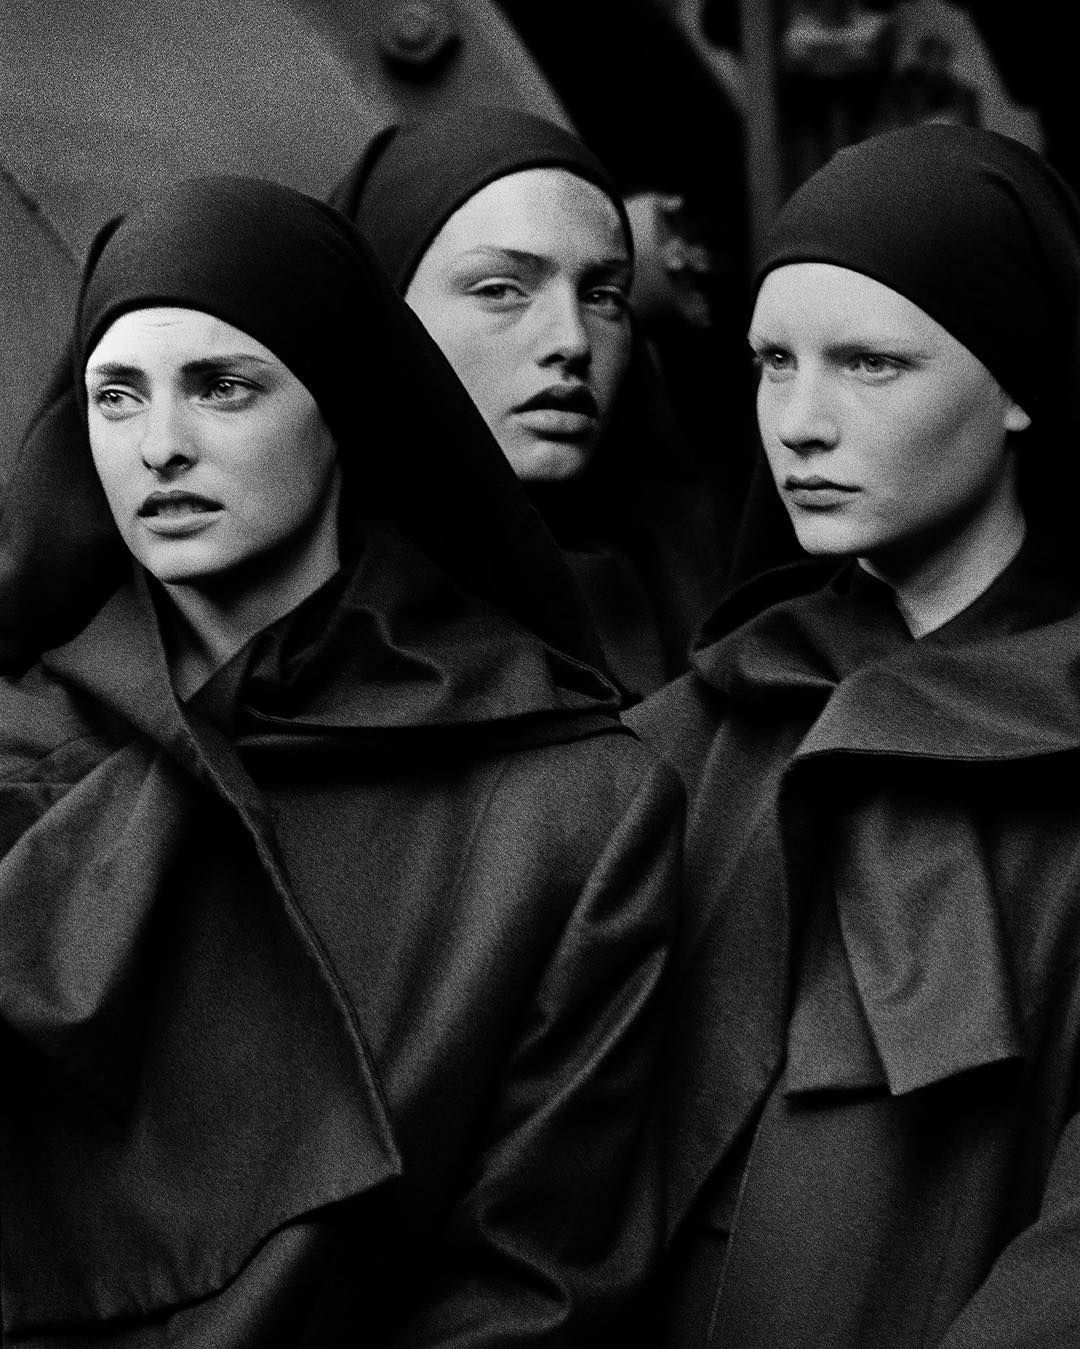 Linda Evangelista, Michaela Bercu and Kirsten Owen for Comme des Garçons, 1988 Photographed by Peter Lindbergh